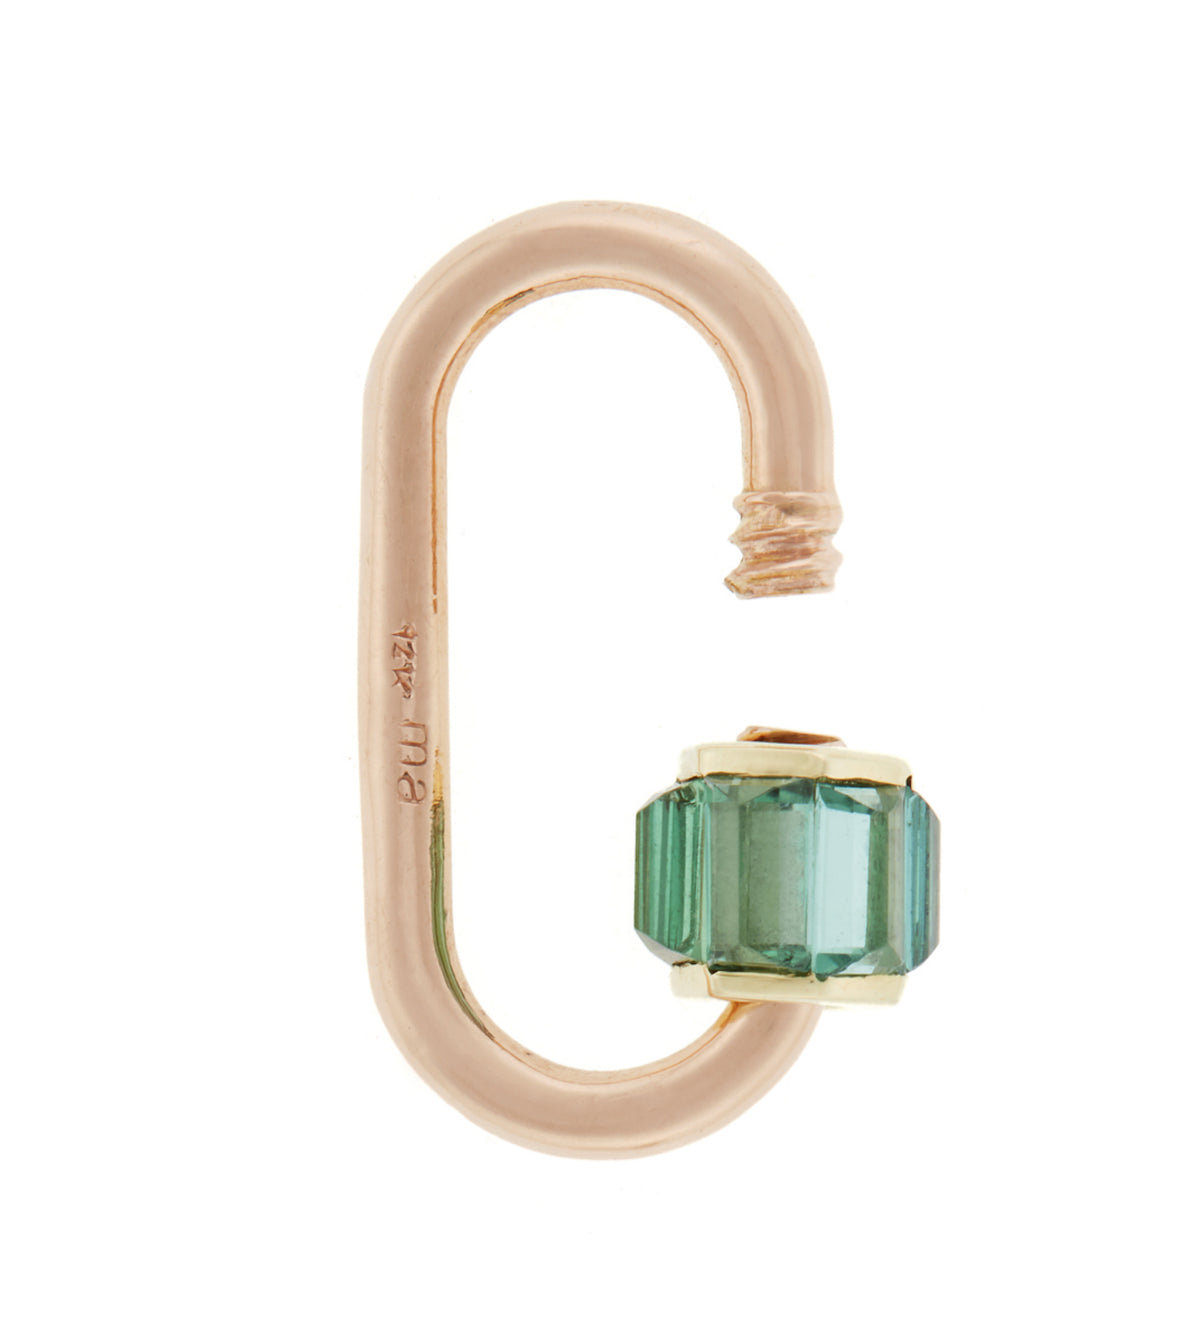 Total Medium Baguette Lock with Paraiba